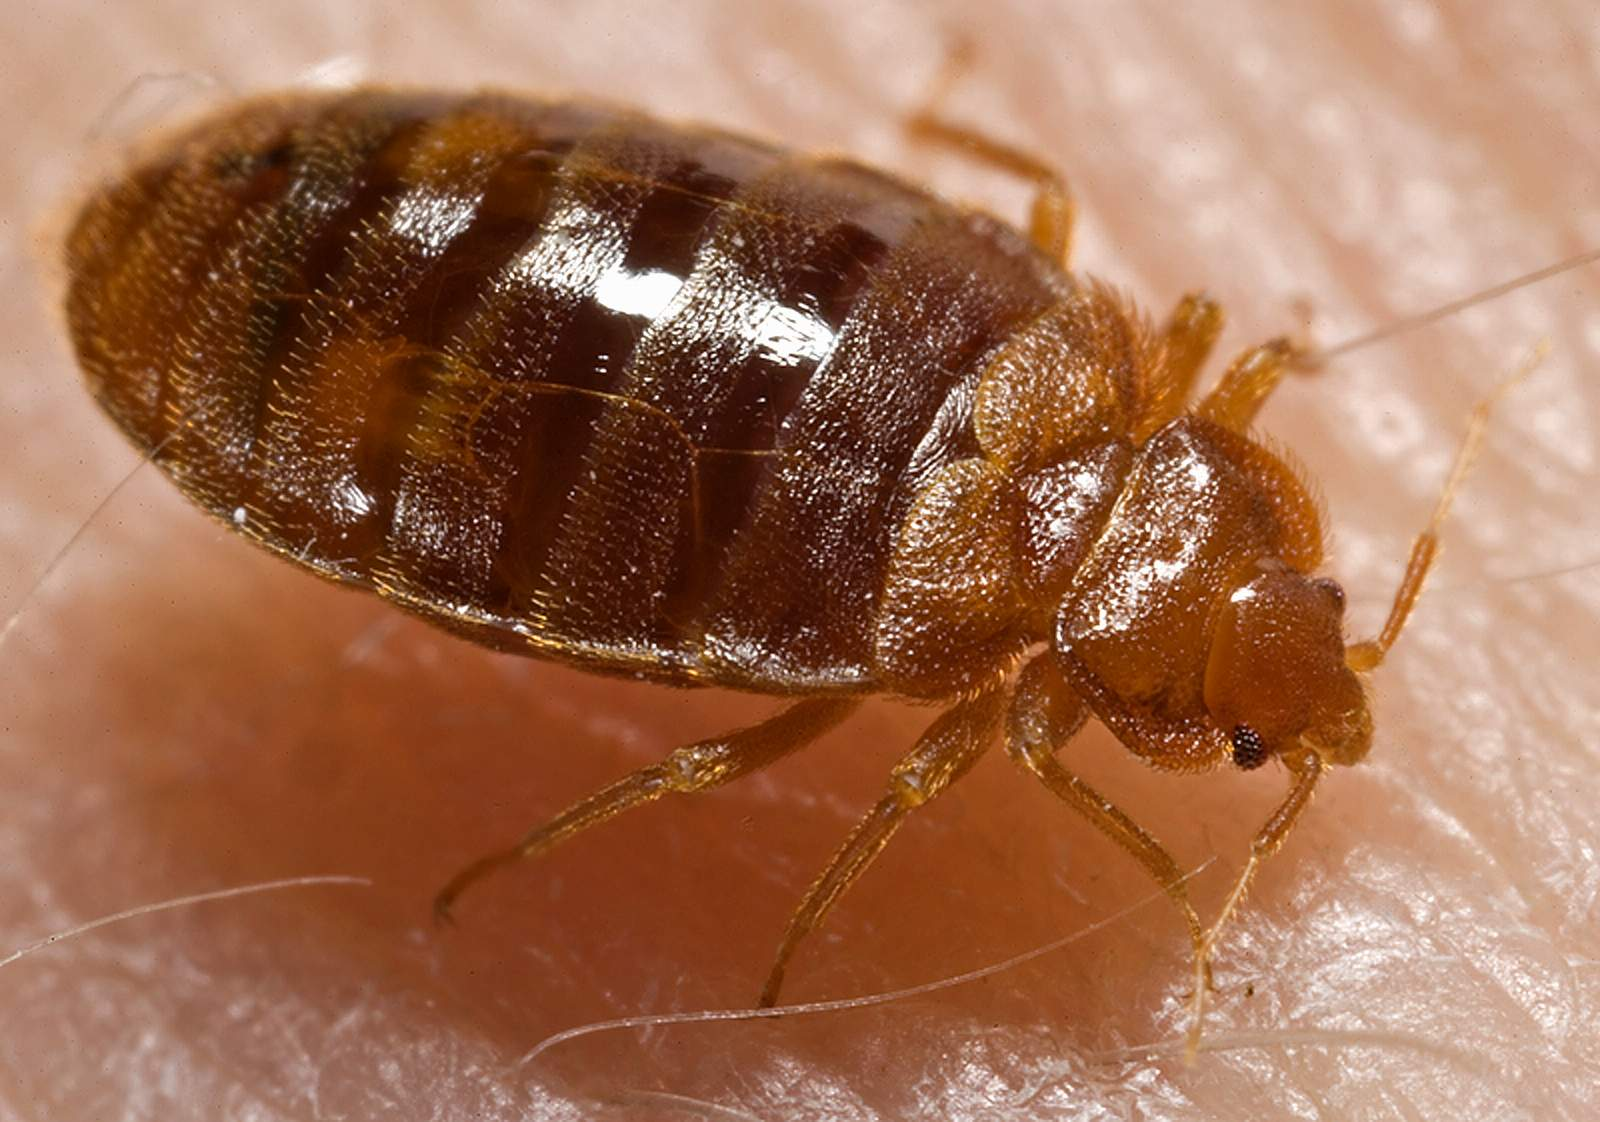 Photograph of a Bed Bug